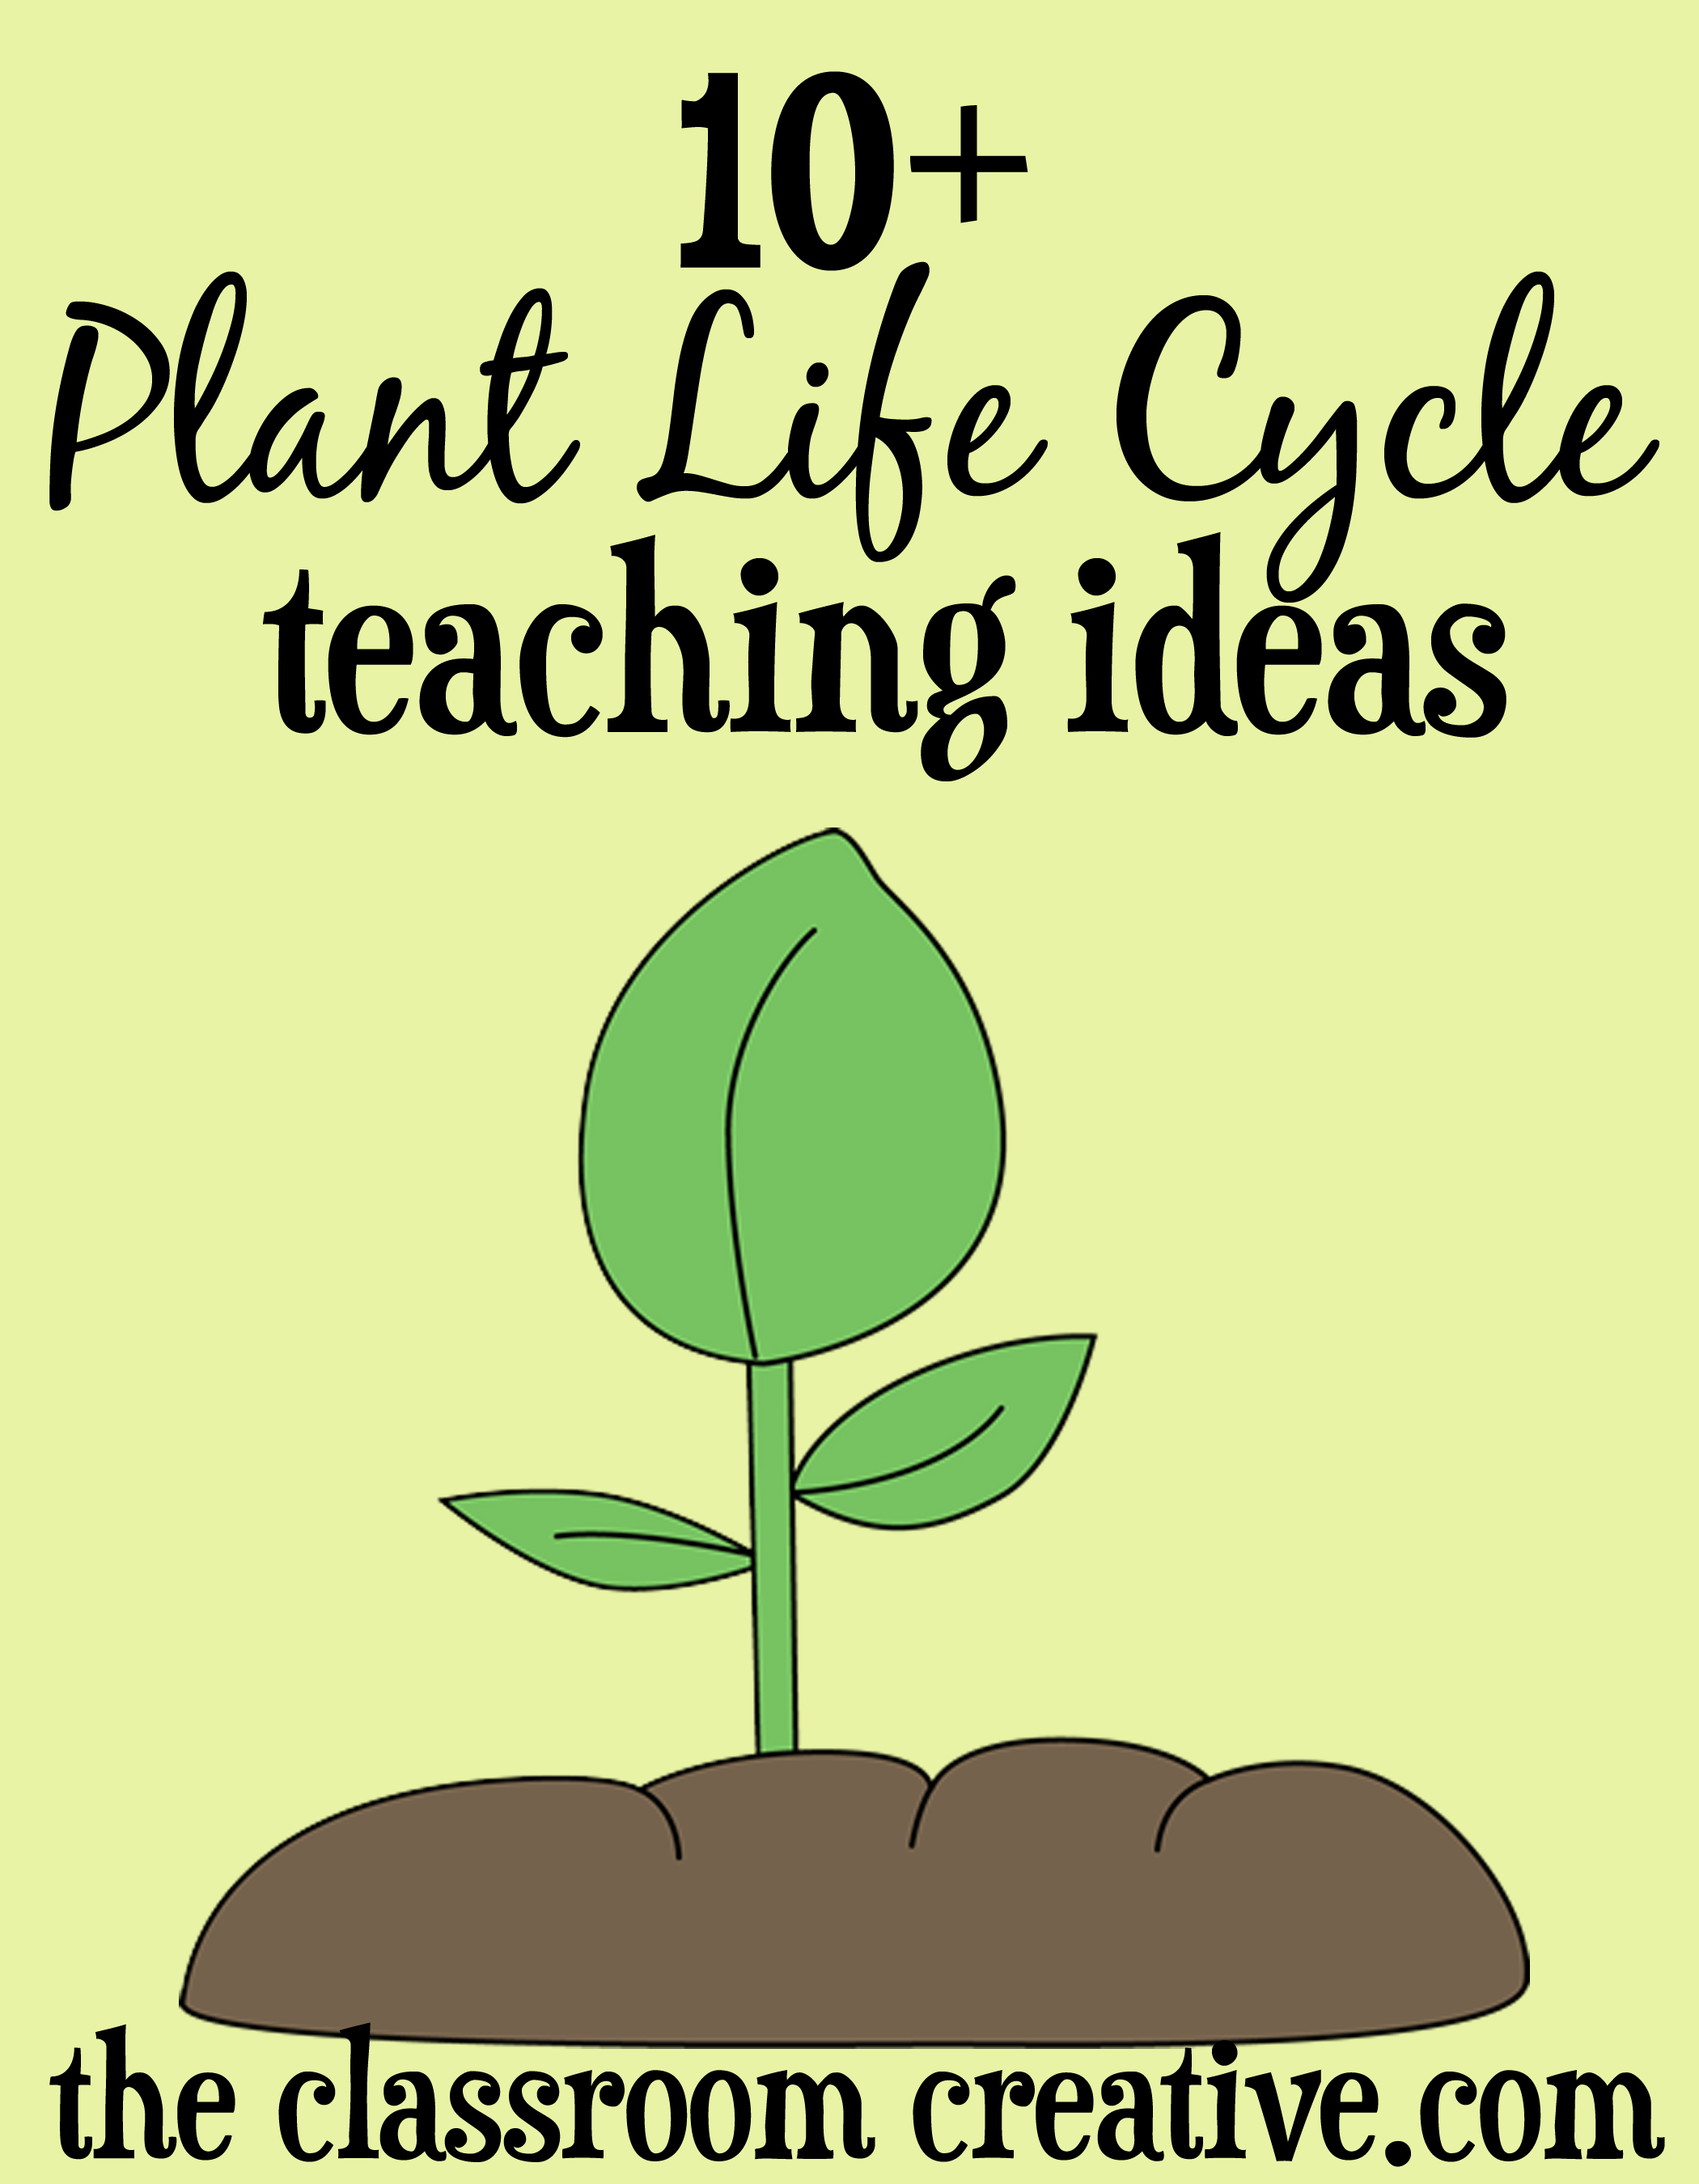 worksheet Life Cycle Of A Plant Worksheet plant life cycle unit ideas and activities crafts resources